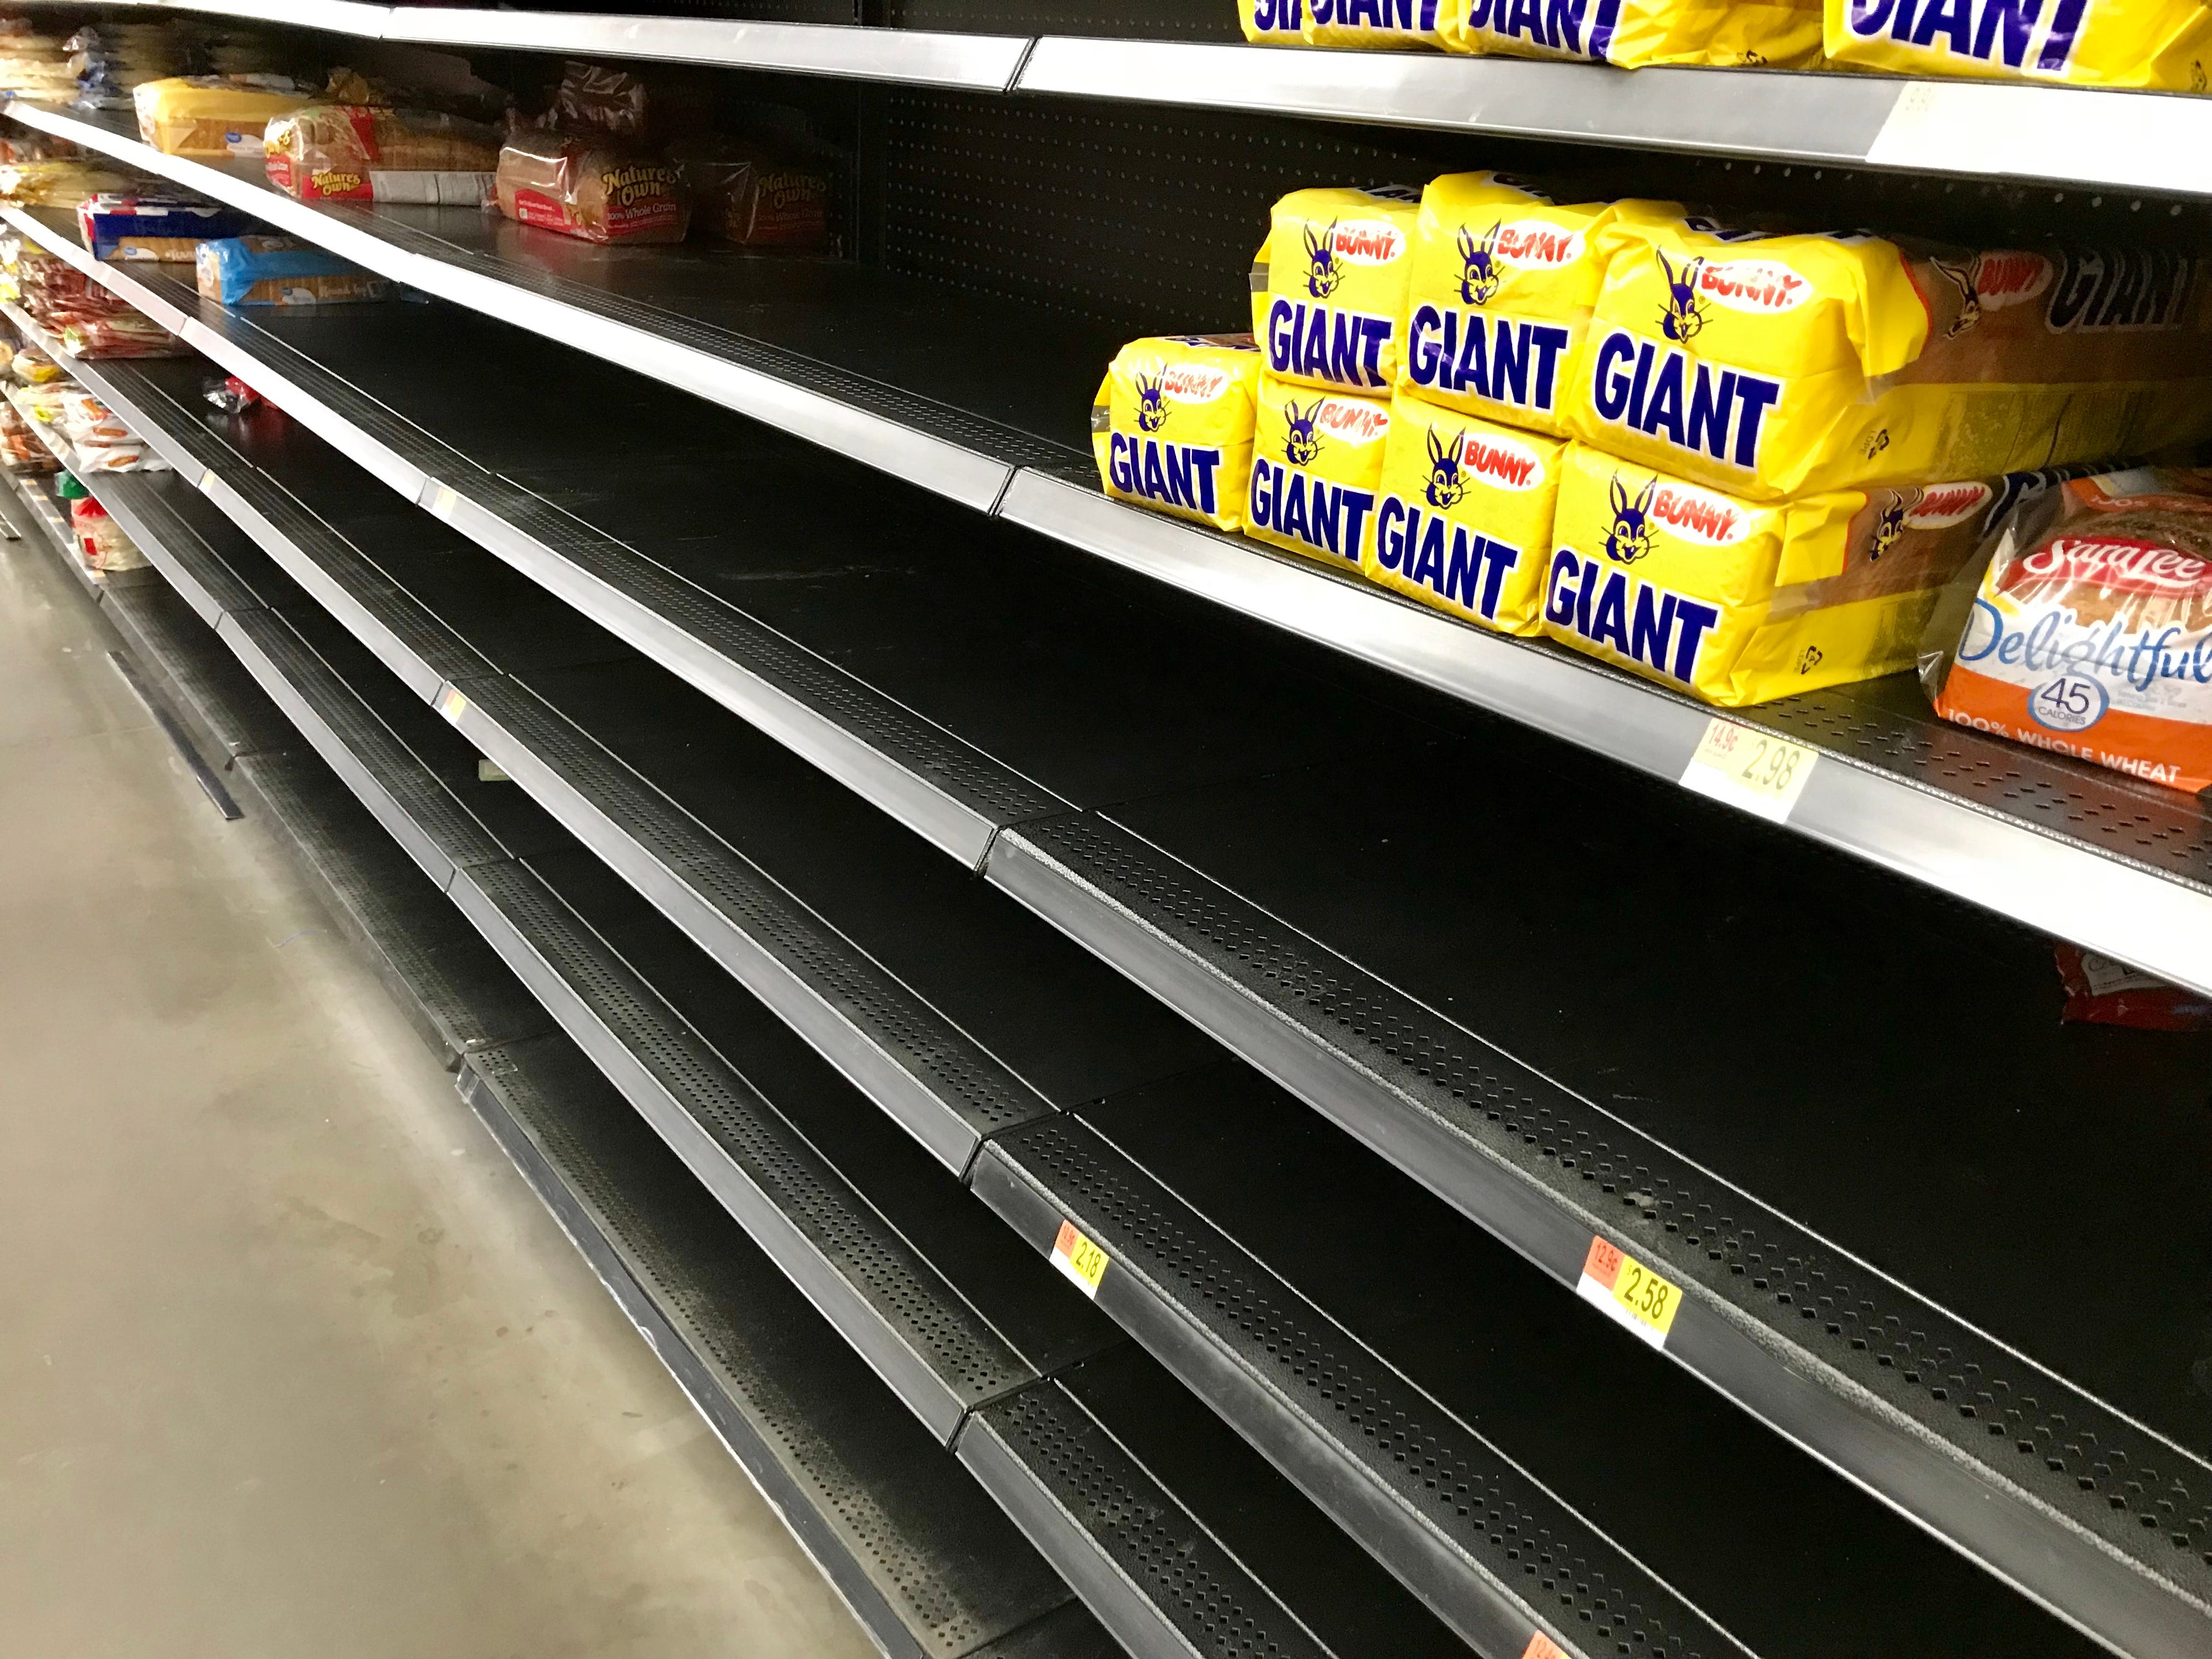 Boyle column: Why are we obsessed with milk and bread for snow?